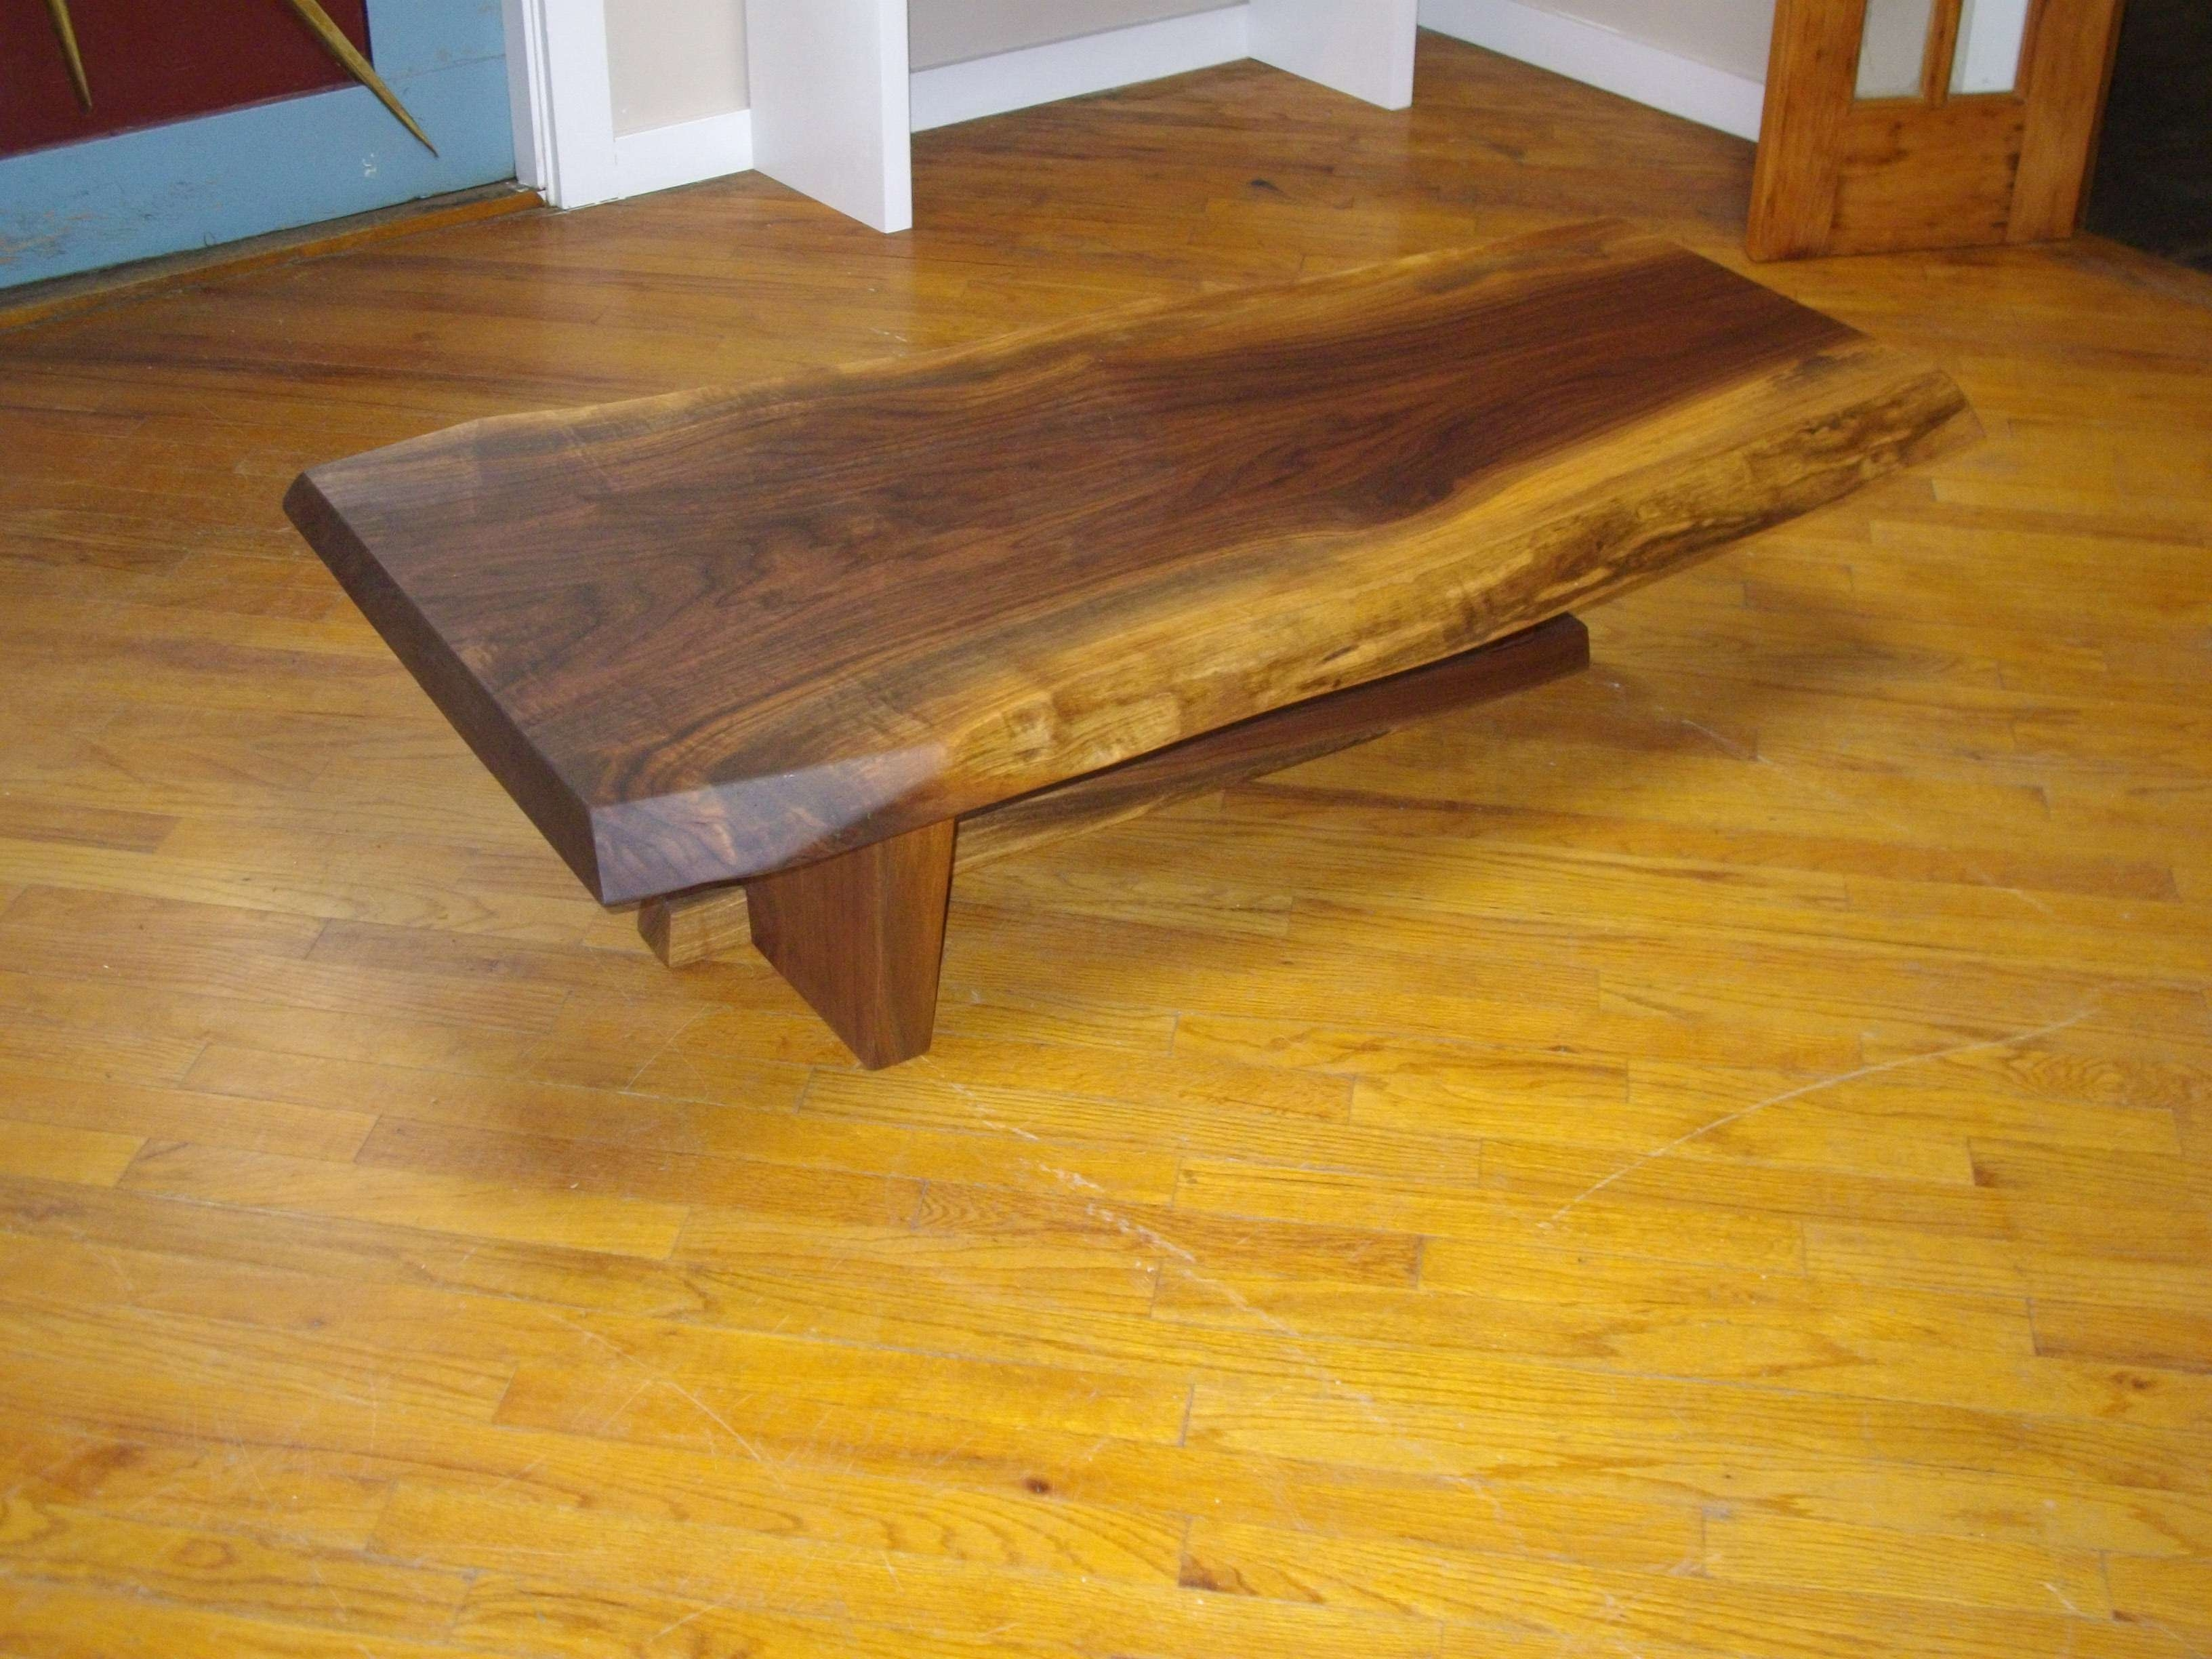 Newest Rustic Wooden Coffee Tables Pertaining To Upscale Drawers Coffee Tables Also Low Rustic Wood Coffee Table (View 13 of 20)